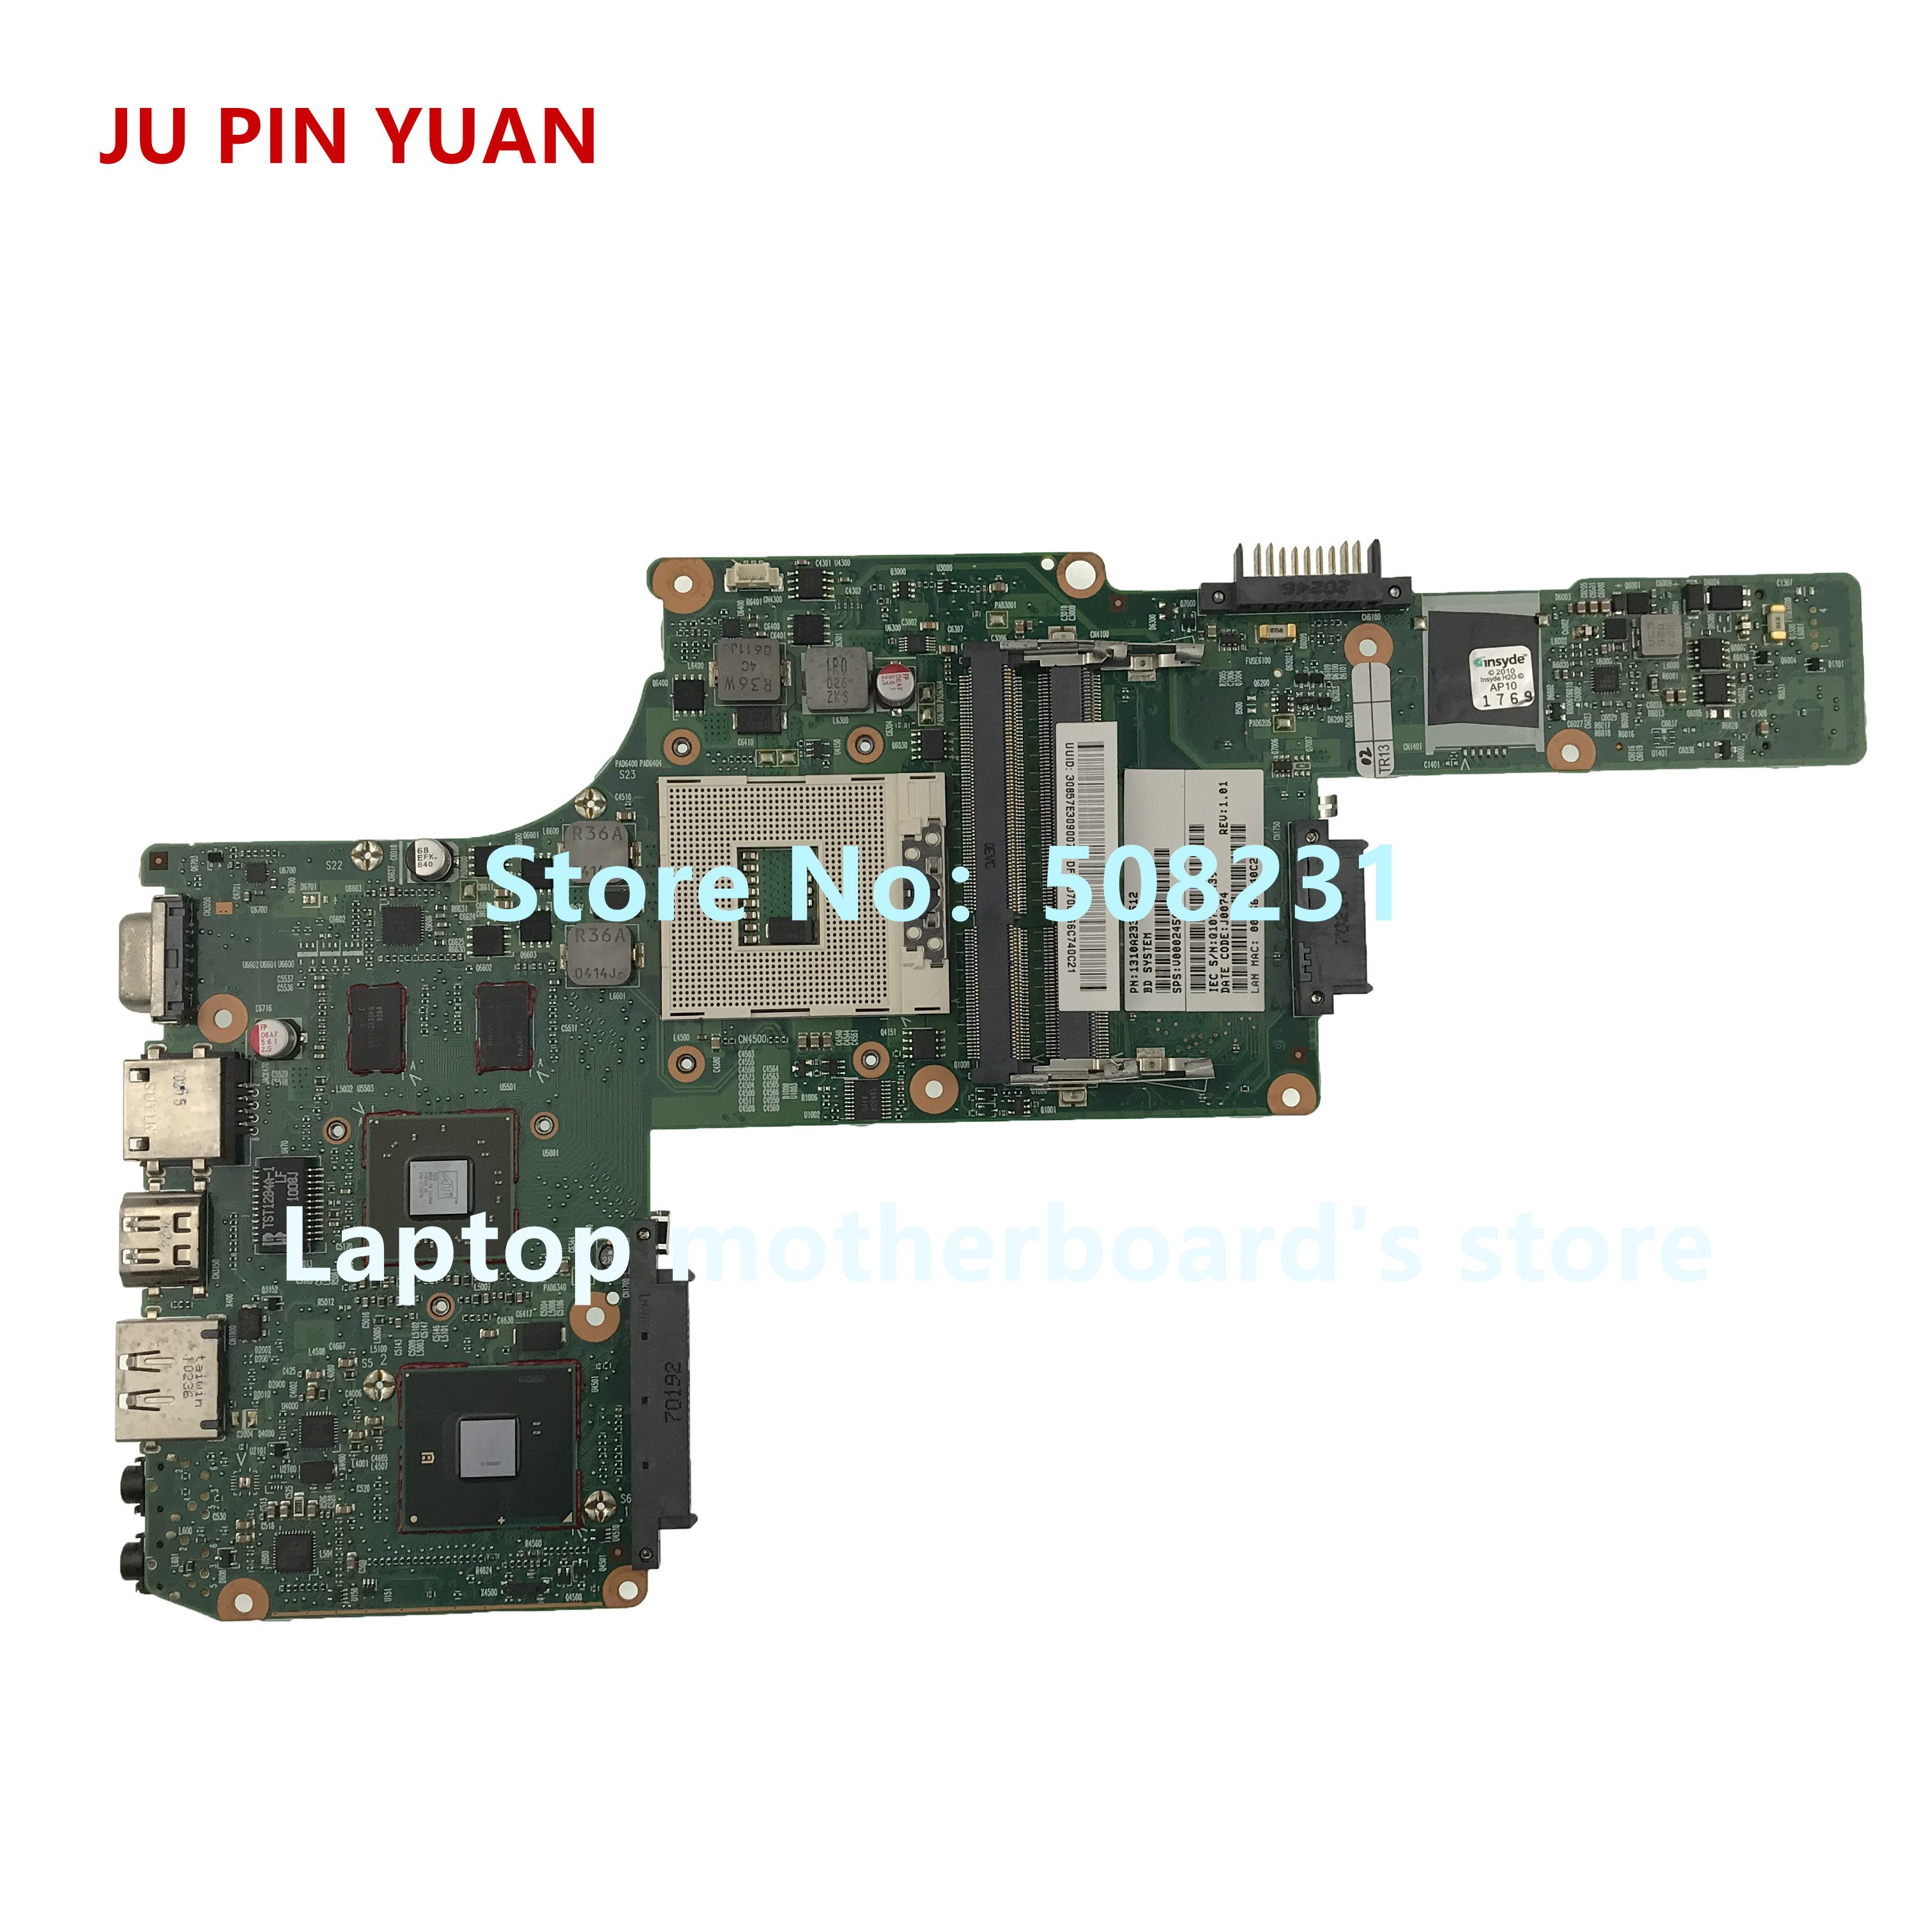 JU PIN YUAN V000245020 6050A2338401 MB A02 mainboard For toshiba satellite L630 L635 Laptop Motherboard fully